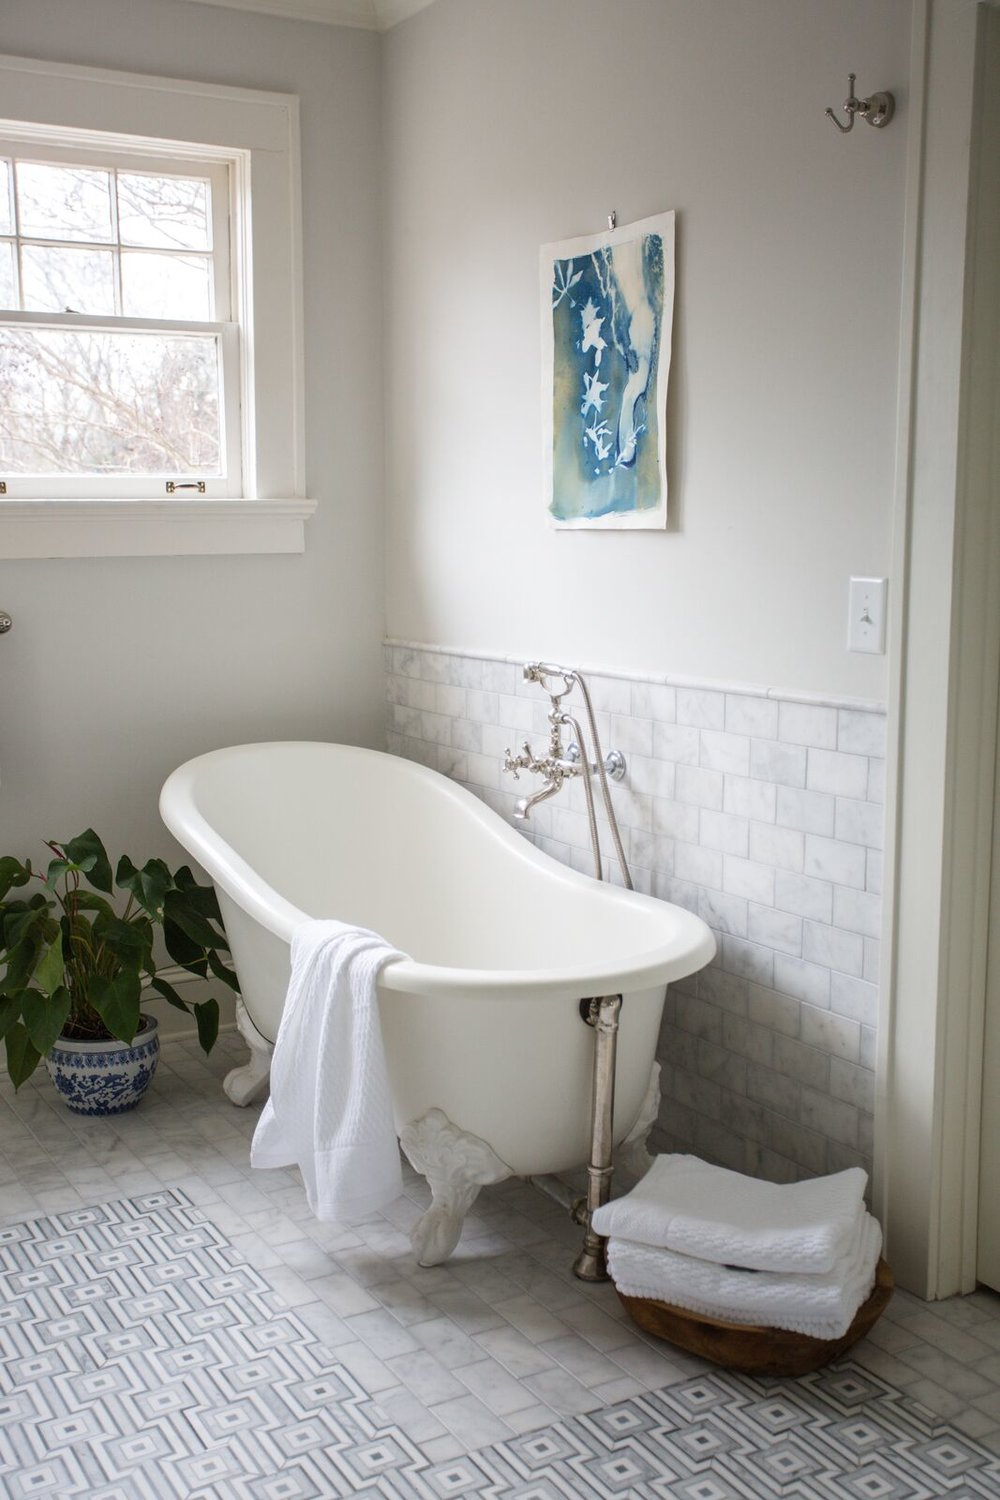 1920s Tudor Home bath tub.jpg